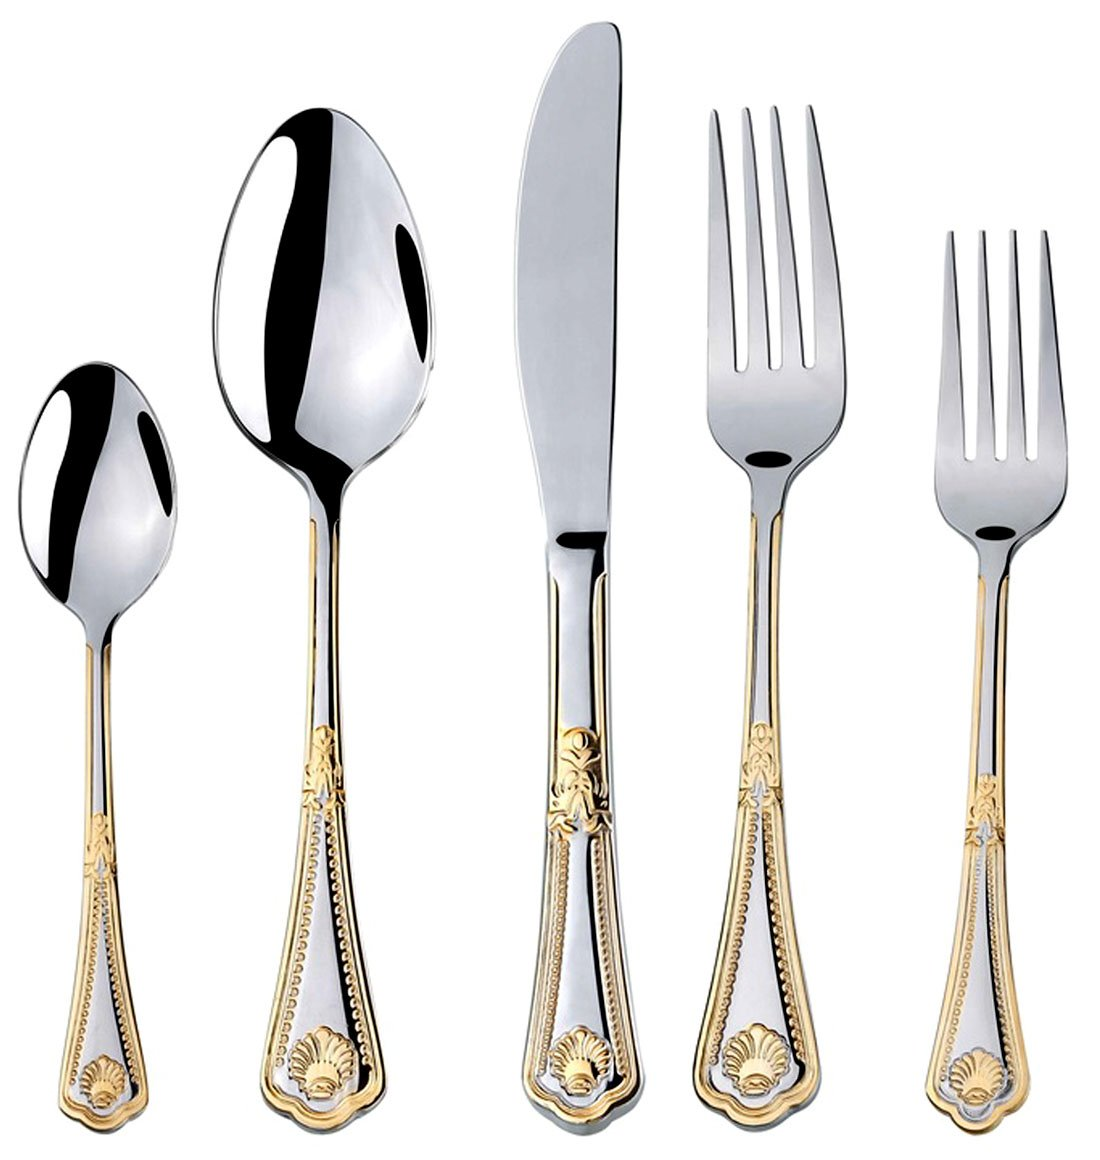 Amazon.com | Venezia Collection 40-Pcs. Fine Flatware Set Silverware Cutlery Dining Service for 8 Premium 18/10 Surgical Stainless Steel 24K Gold-Plated ...  sc 1 st  Amazon.com & Amazon.com | Venezia Collection 40-Pcs. Fine Flatware Set ...